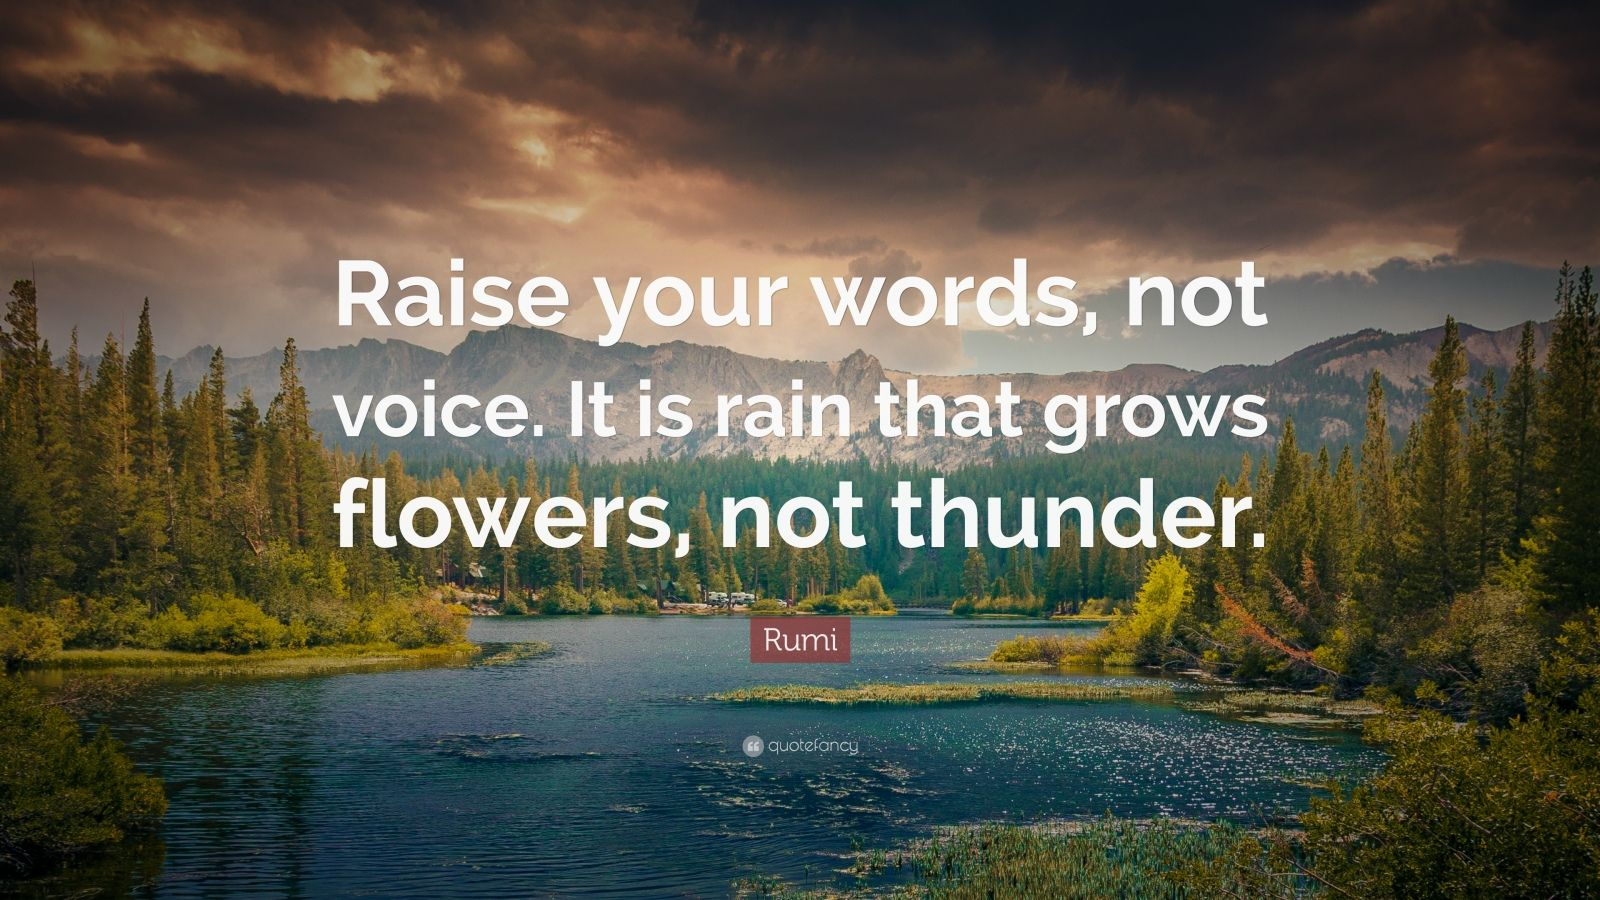 Rumi Quotes Wallpaper Rumi Quote Raise Your Words Not Voice It Is Rain That